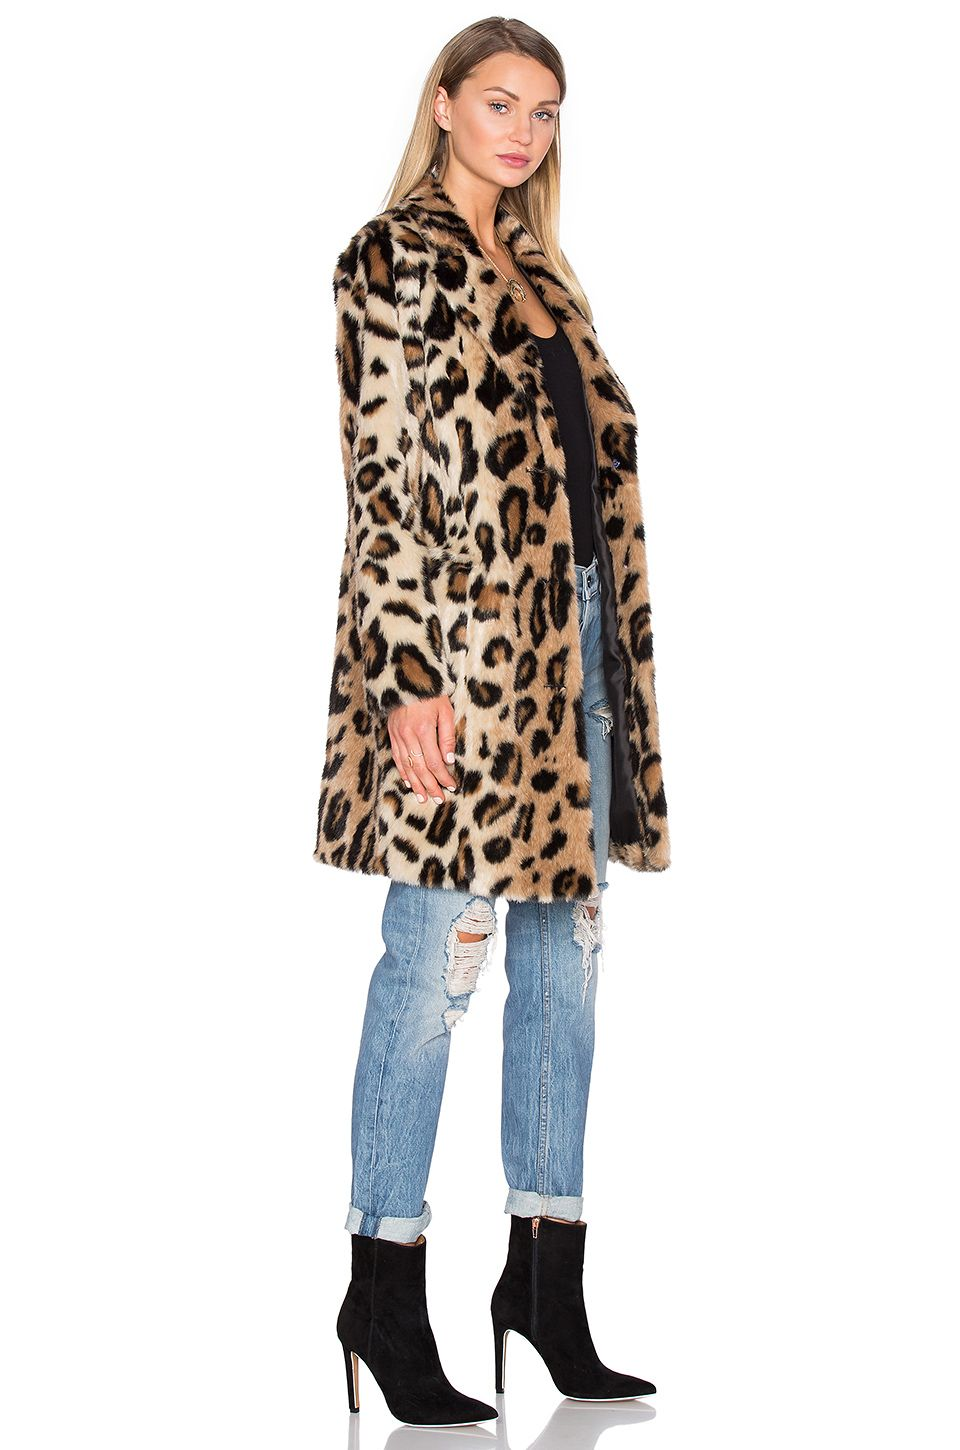 10867d527e10 House of Harlow 1960 x REVOLVE Genn Faux Fur Coat in Leopard | REVOLVE